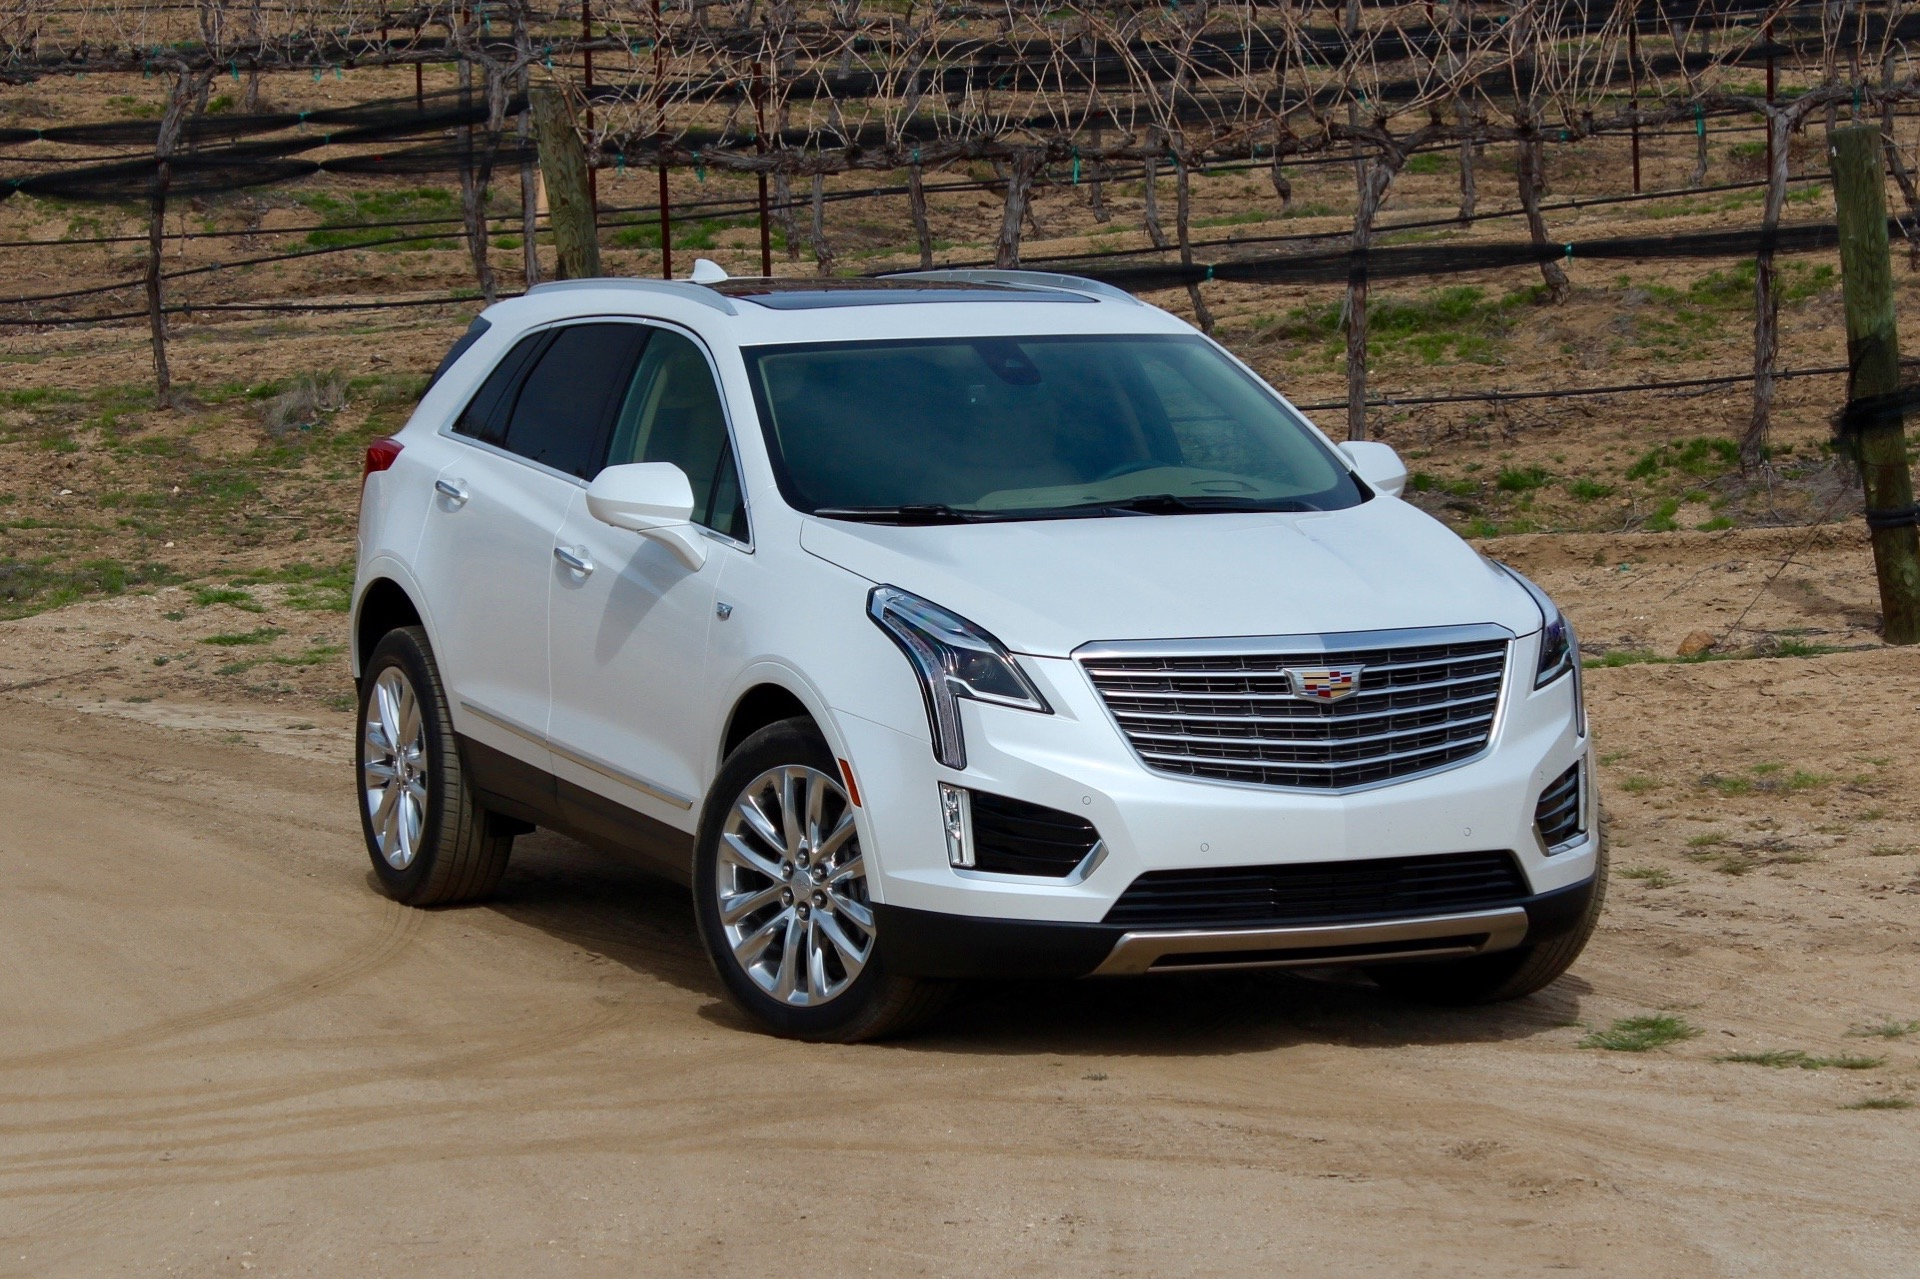 All New Cadillac Xt5 Earns Top Safety Pick From The Iihs